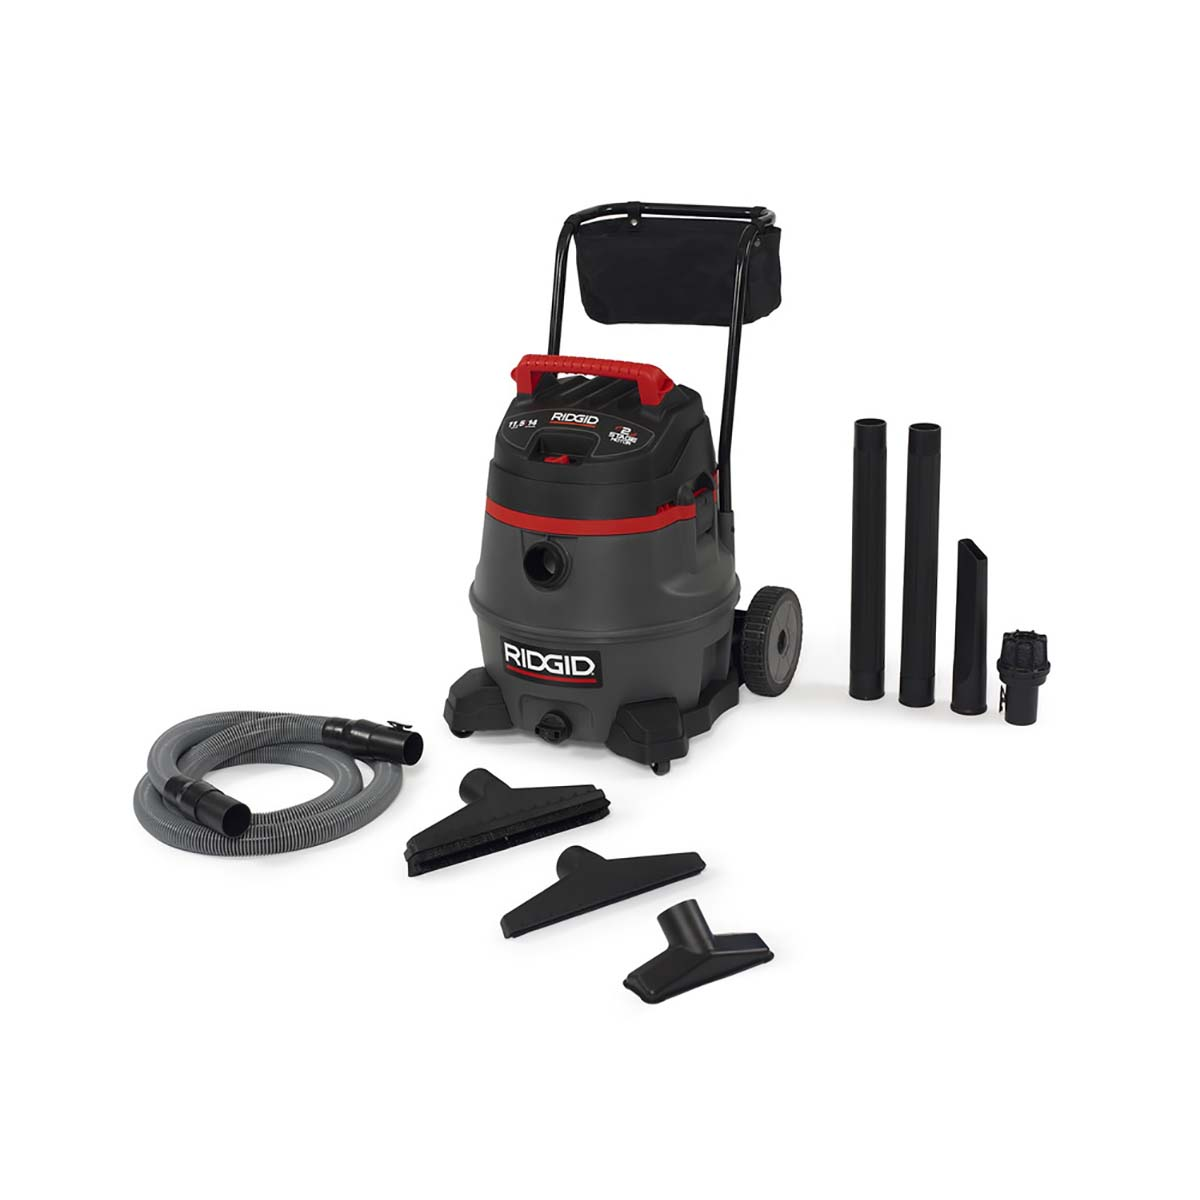 14 Gallon 2-Stage Wet/Dry Vac (RV2400A)